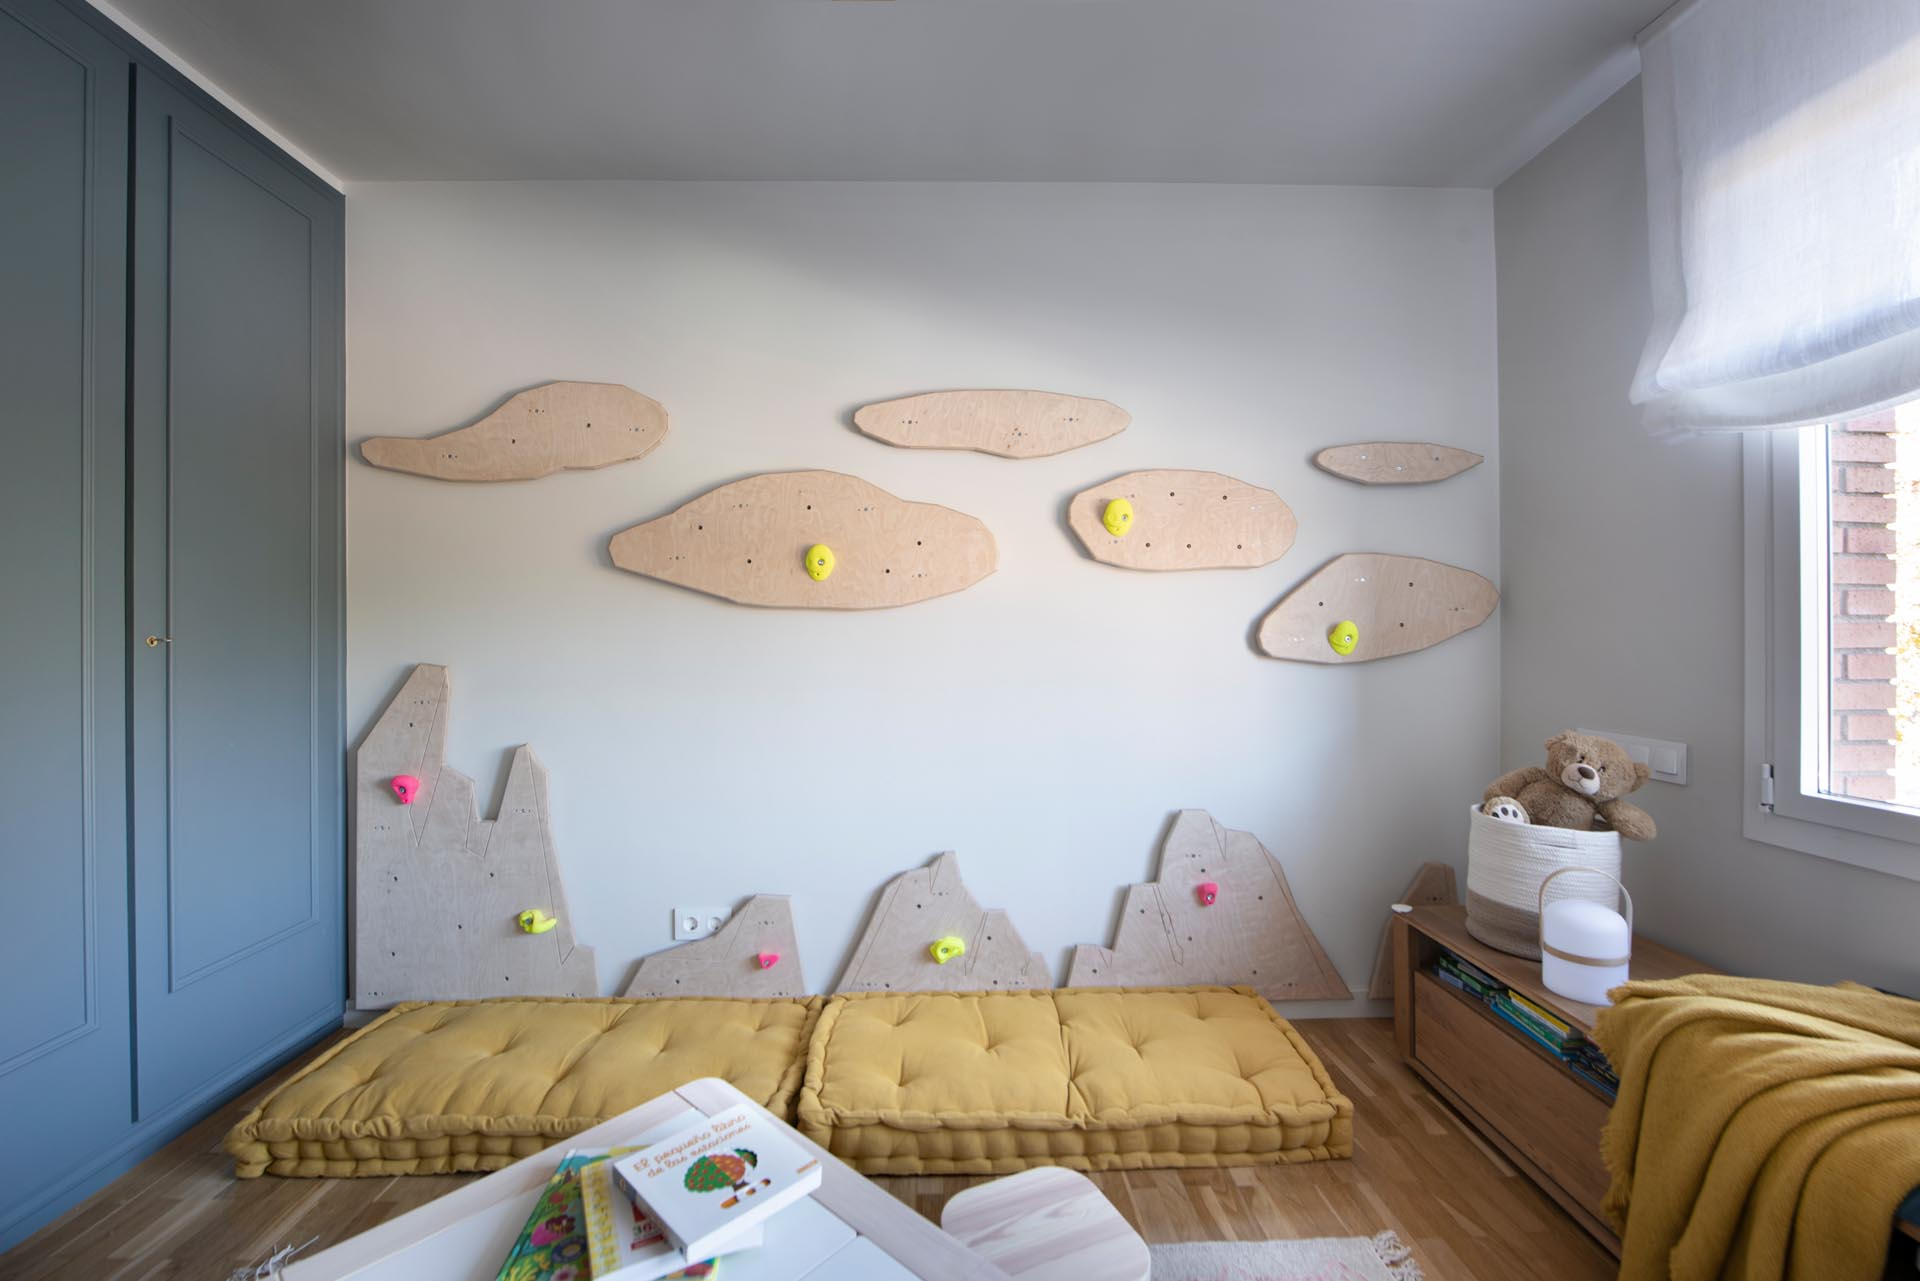 In this modern kid's bedroom, there's uniquely shaped wood cut-outs on the wall that have been designed to attach rock climbing mounts, turning the one empty wall into a climbing wall.